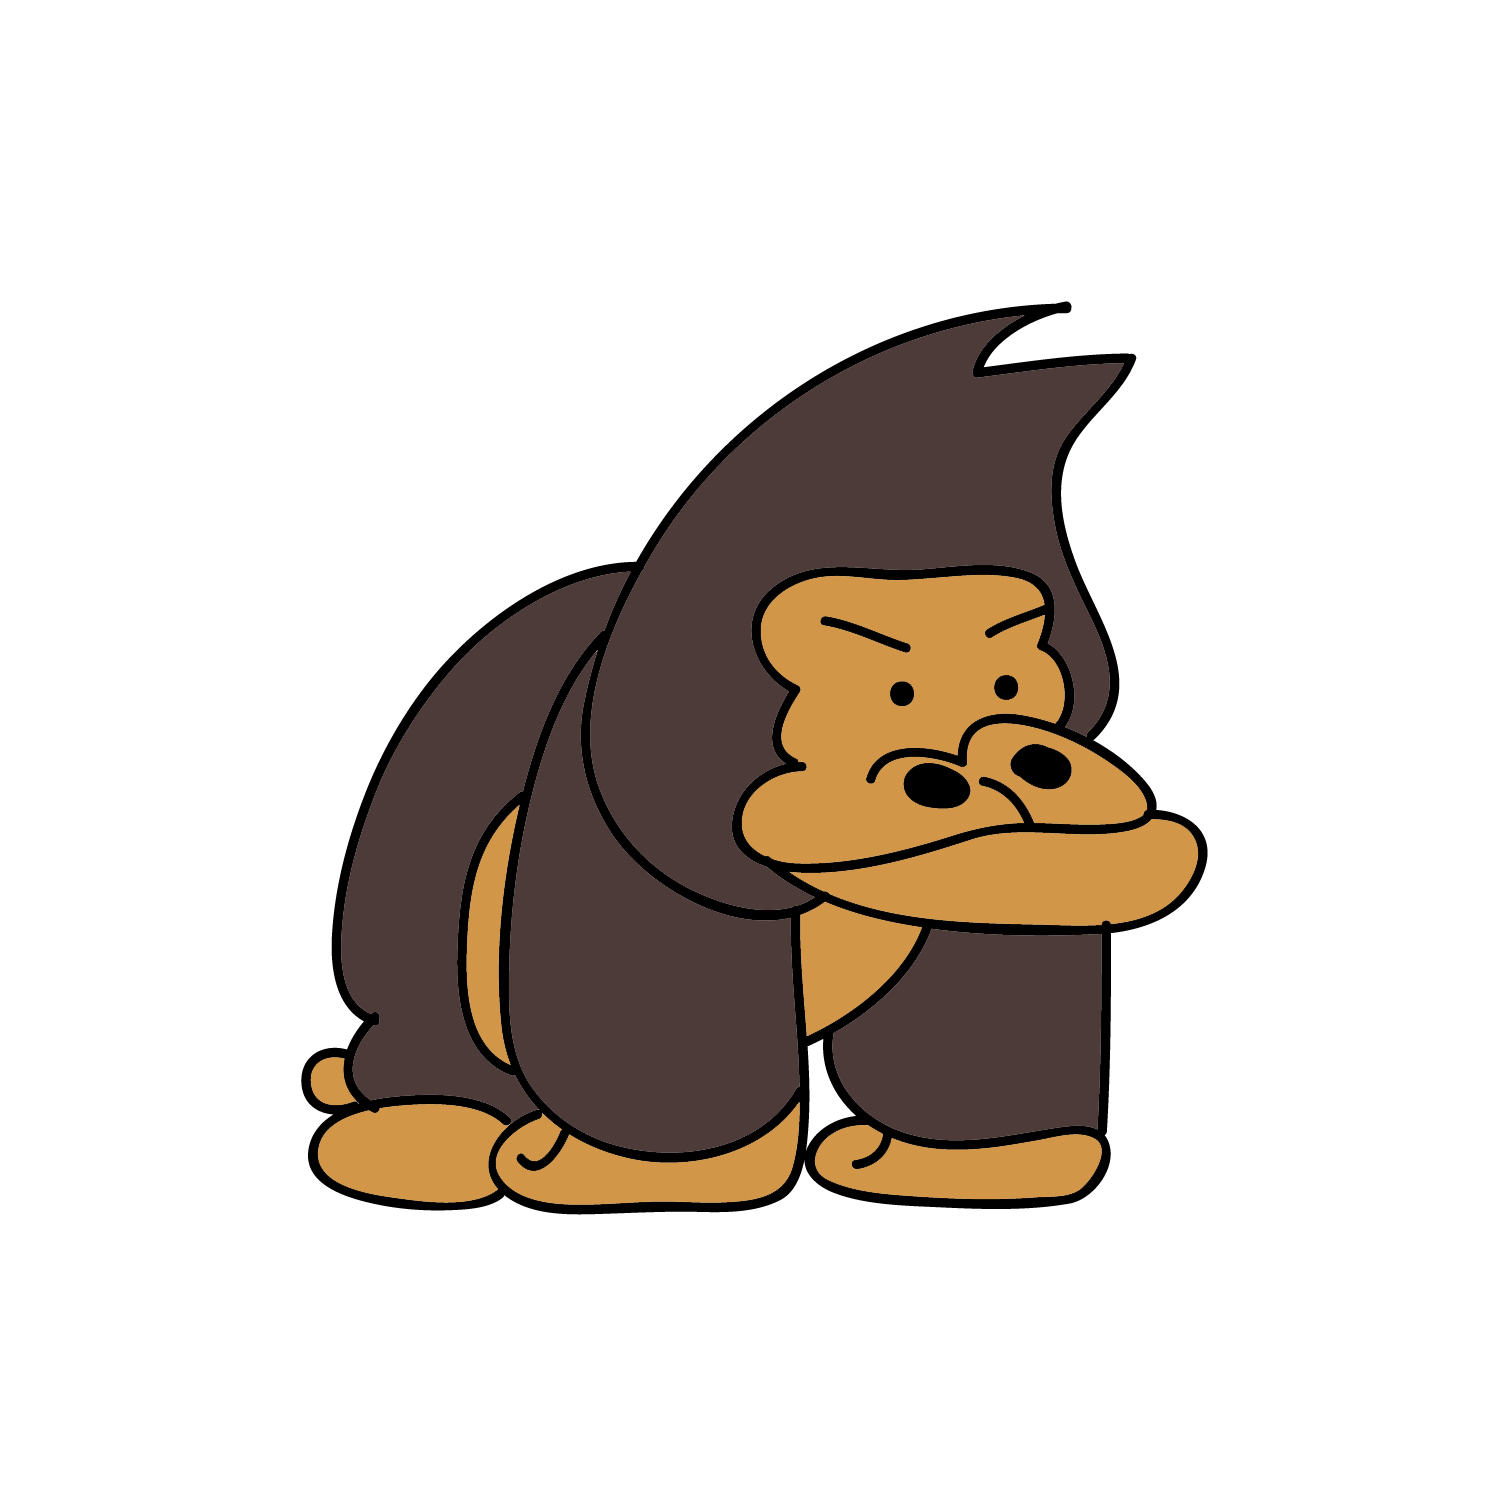 Cartoon Gorilla Pictures - Cliparts.co